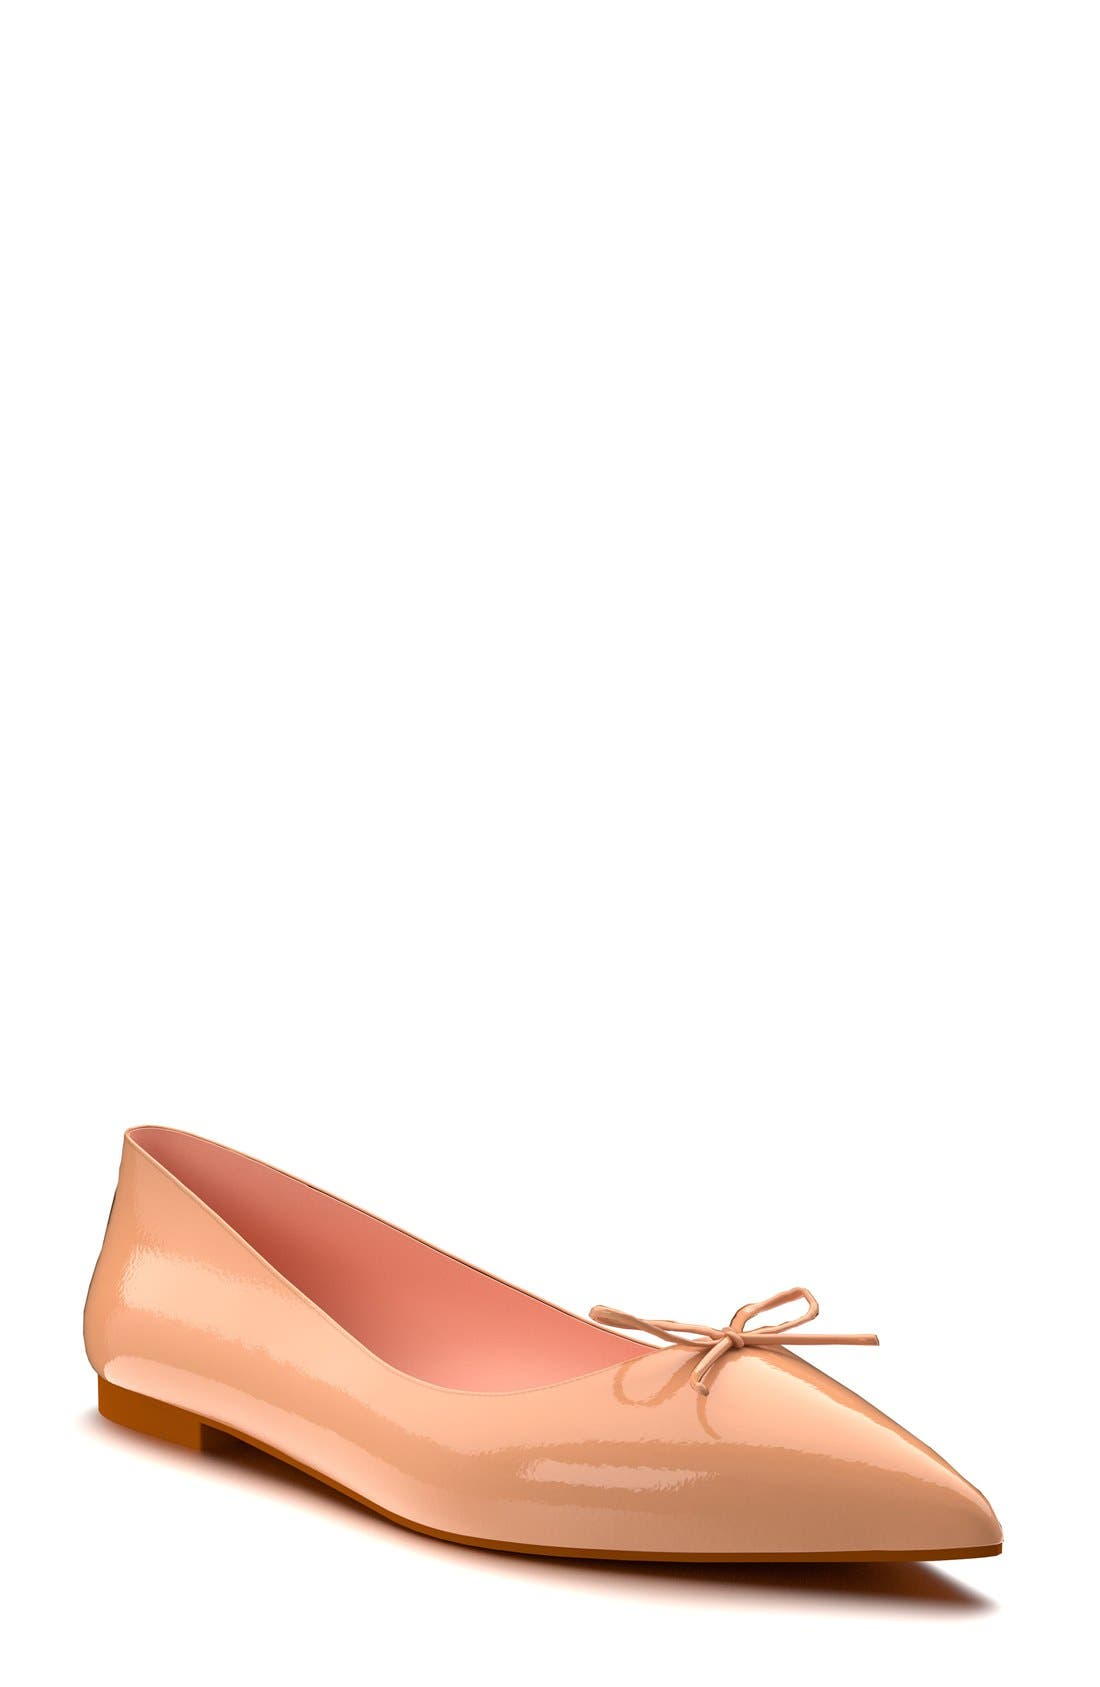 Alternate Image 1 Selected - Shoes of Prey Pointy Toe Ballet Flat (Women)